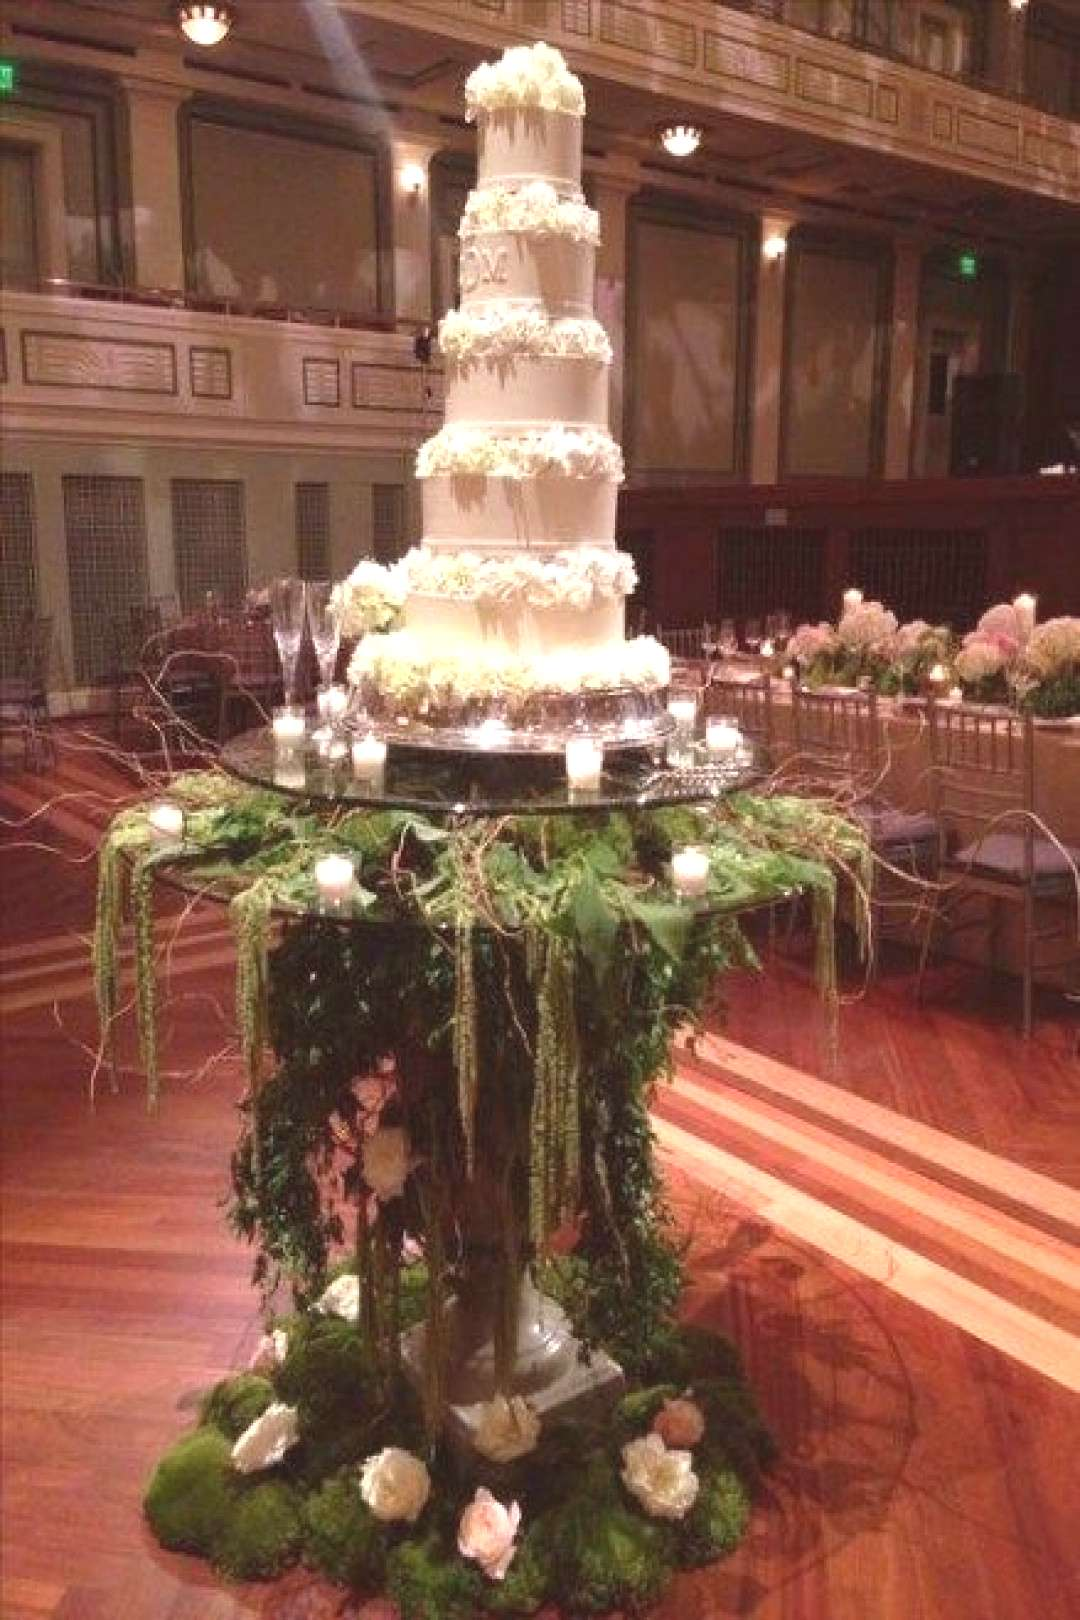 97 Woodland Themed Wedding Ideas and Cakes To Stand Out 27 Best Ideas garden wedding cake awesome